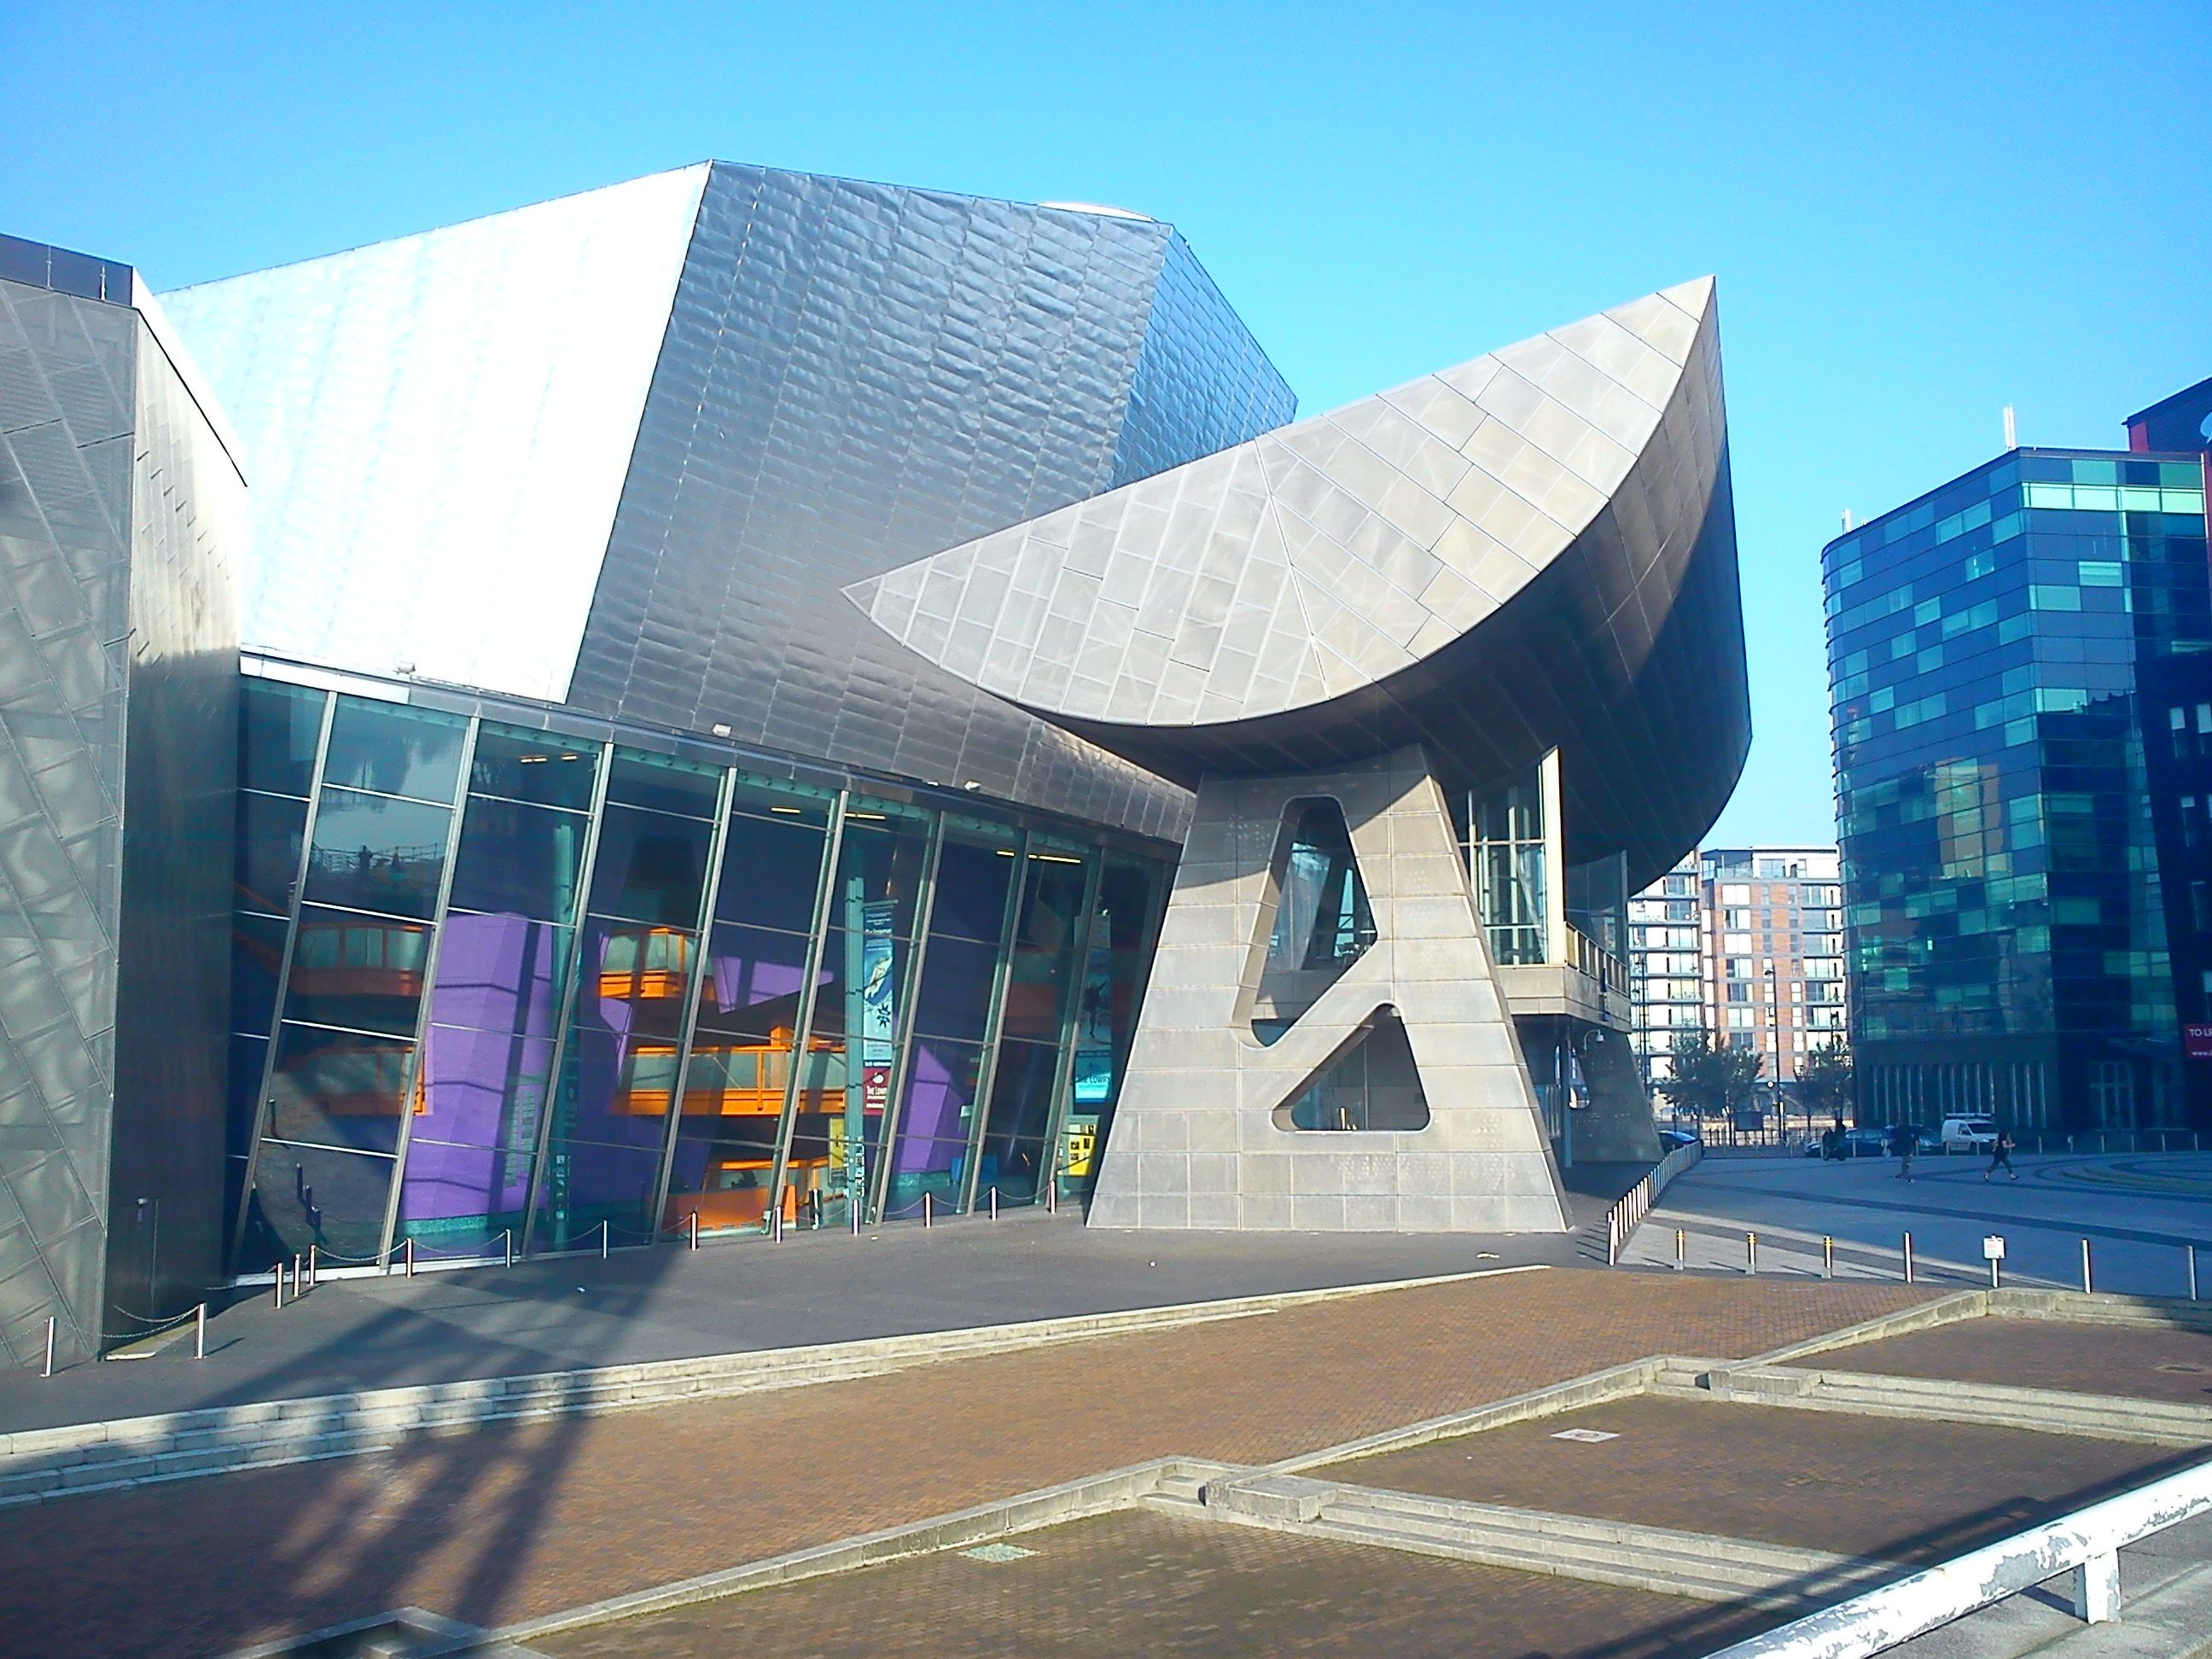 About Us Salford, Art gallery, Tourist information